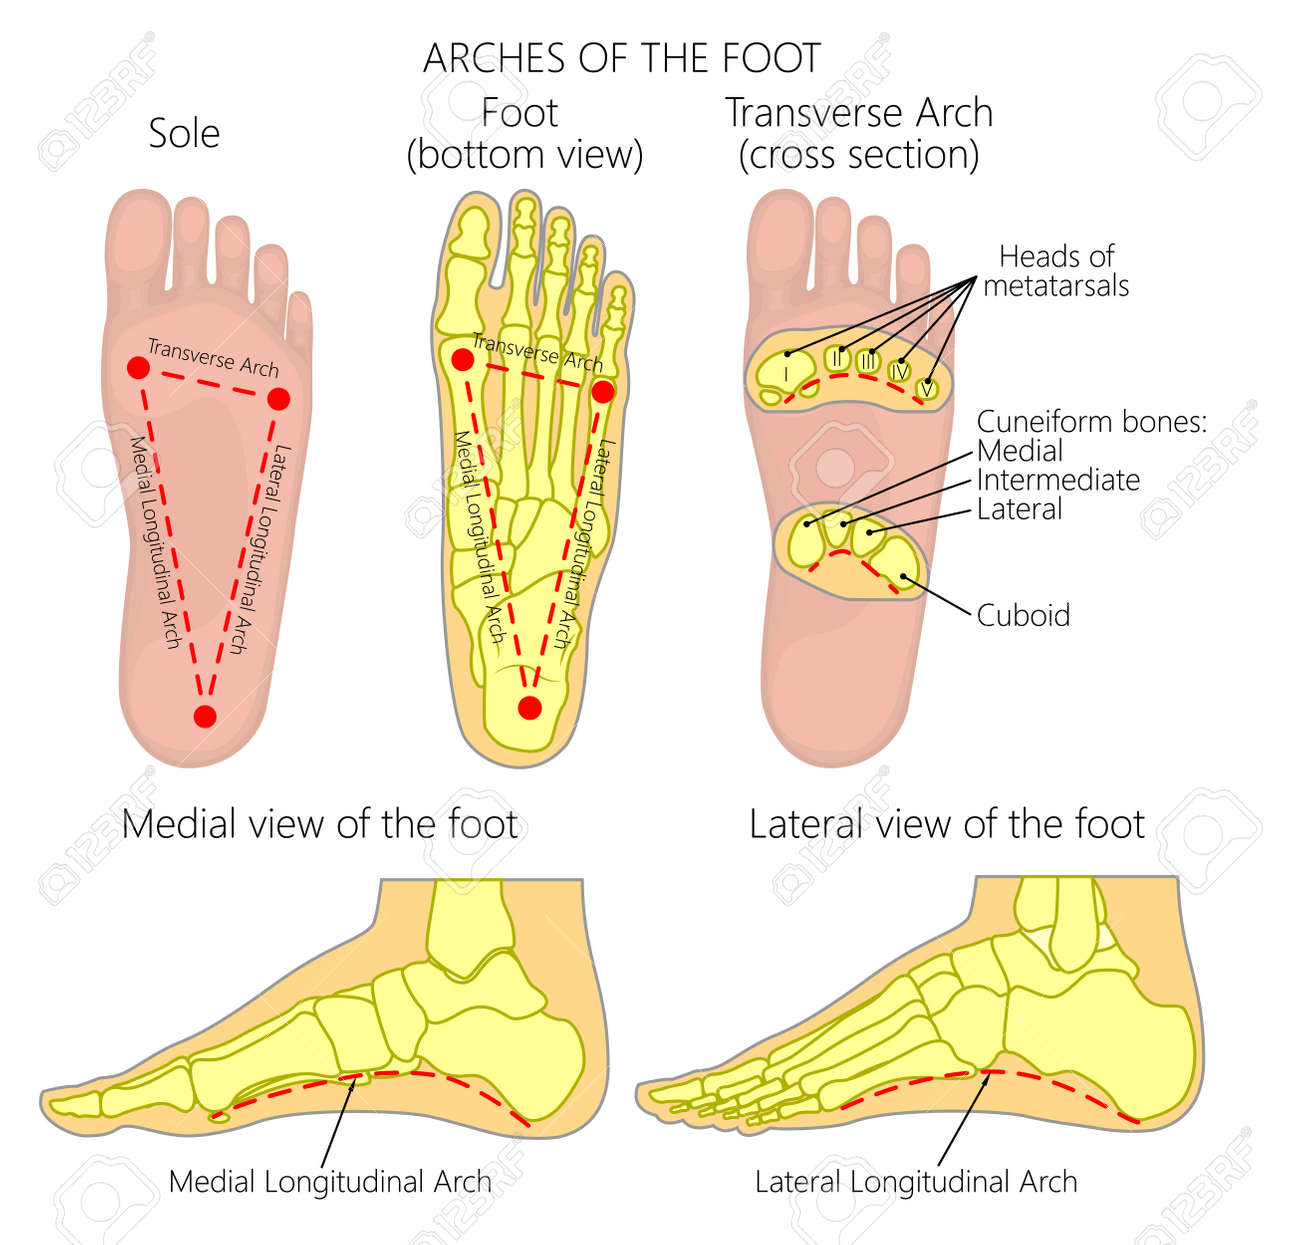 Foot Diagram on foot odor, foot index, foot and ankle, foot pain, foot structure, foot schematic, foot problems, foot regions, foot type chart, foot outline, foot assessment form, foot tendons, foot cartoon, arches of the foot, joints of foot, foot parts, anatomical terms of location, foot muscles, foot side view, foot map, foot bones, foot drawing, fifth toe, foot toes,